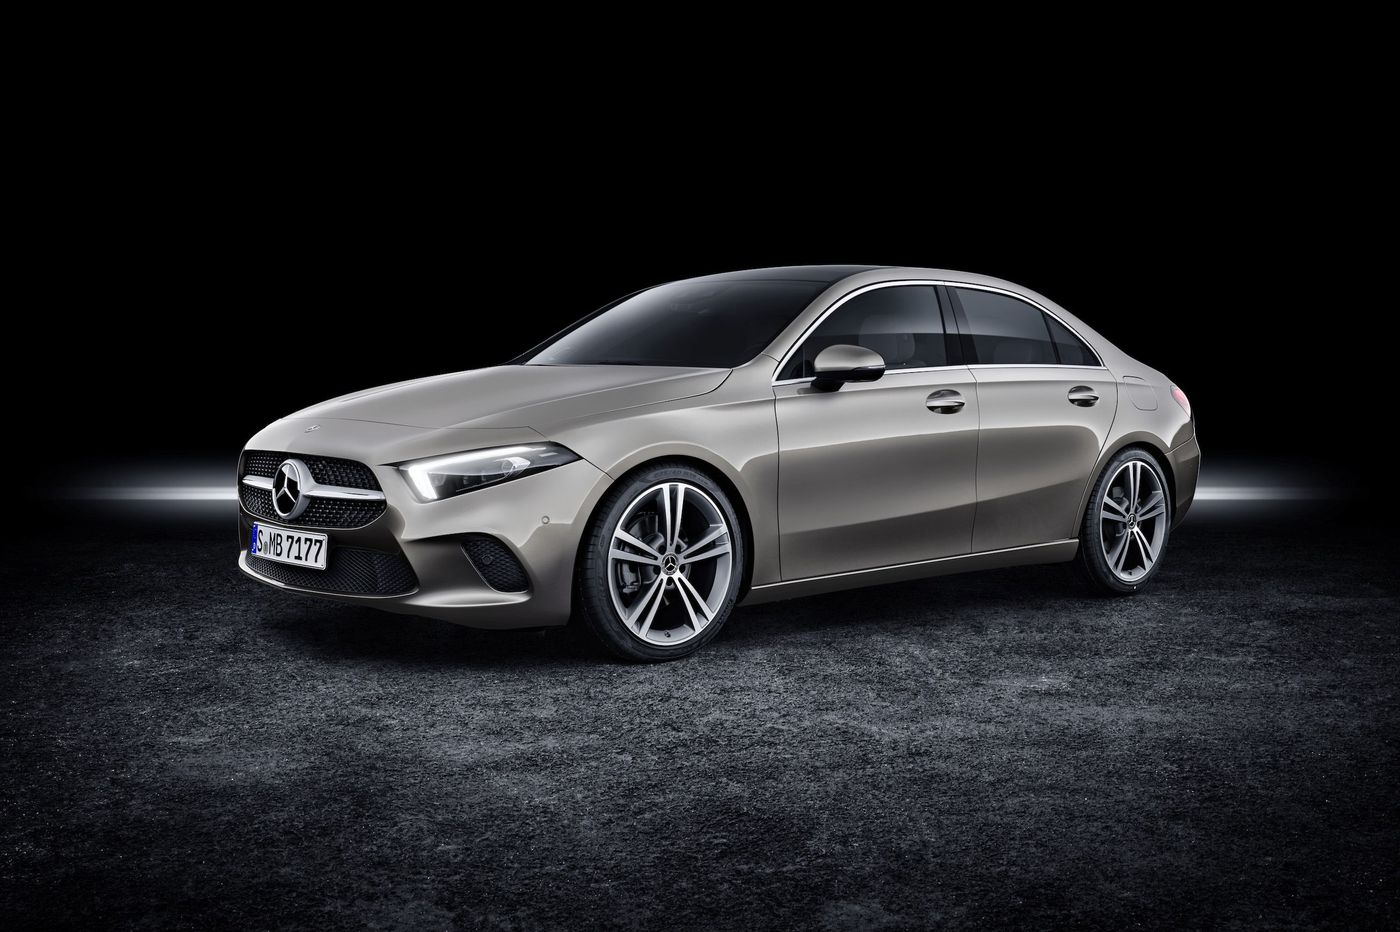 2020 Mercedes A220 offers luxury and performance in a small package